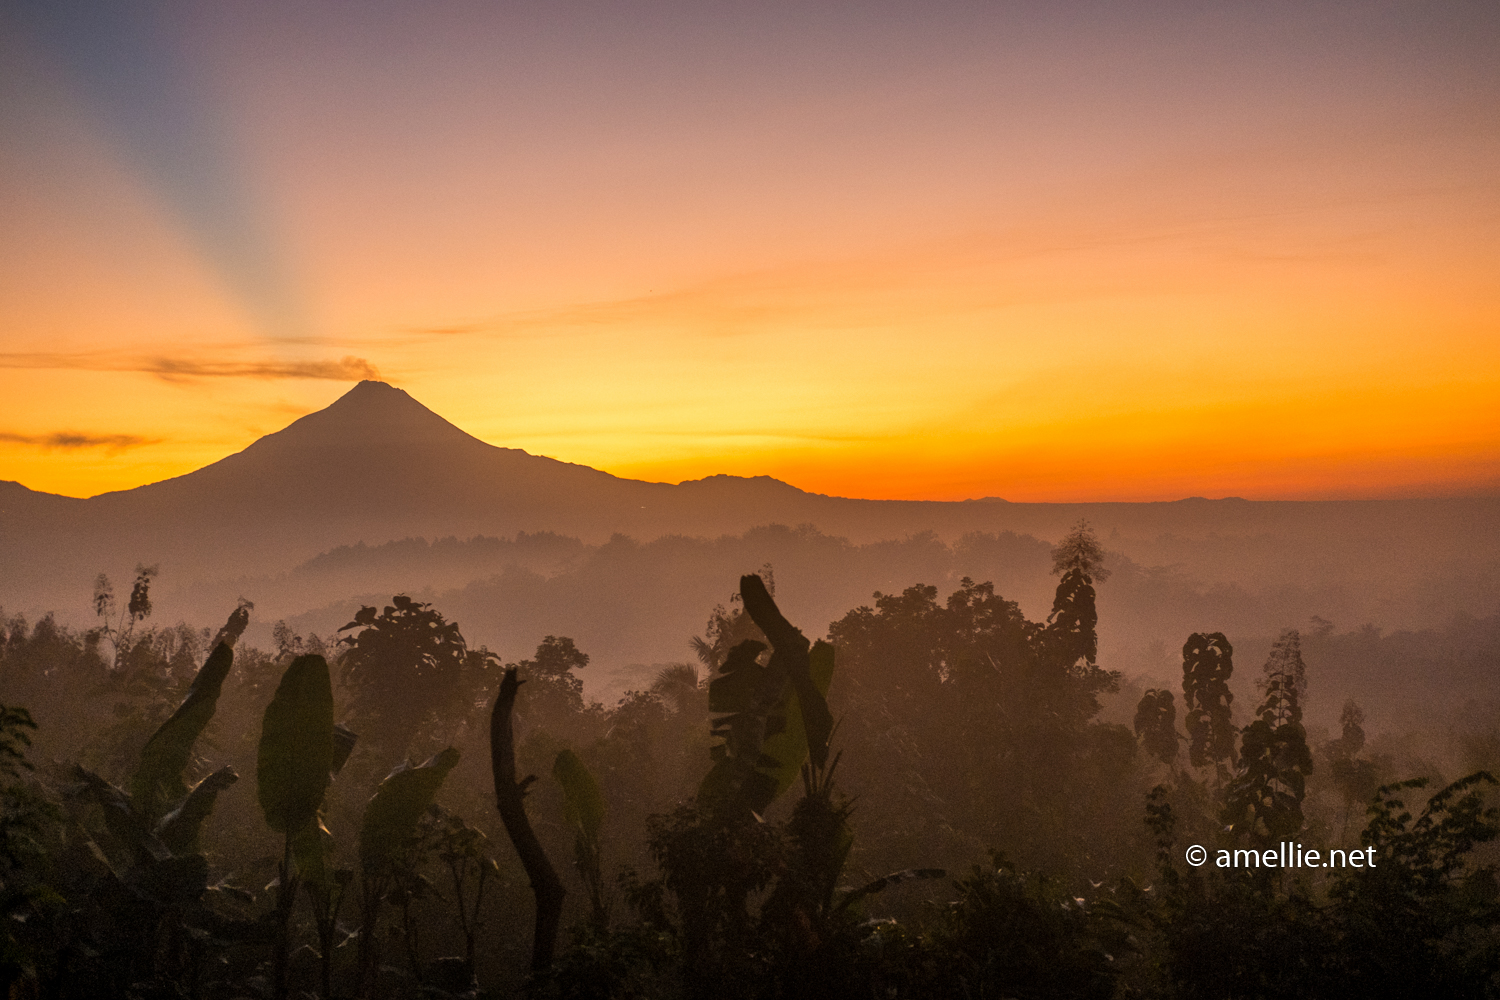 4 Days In Yogyakarta The Ultimate Itinerary For Instagram Worthy Explore Jogja 2018 I Think We Made Right Decision Sunrise View Was Worth Wait With Its Magnificent Merapi Backdrop Borobudur Is So Tiny Though